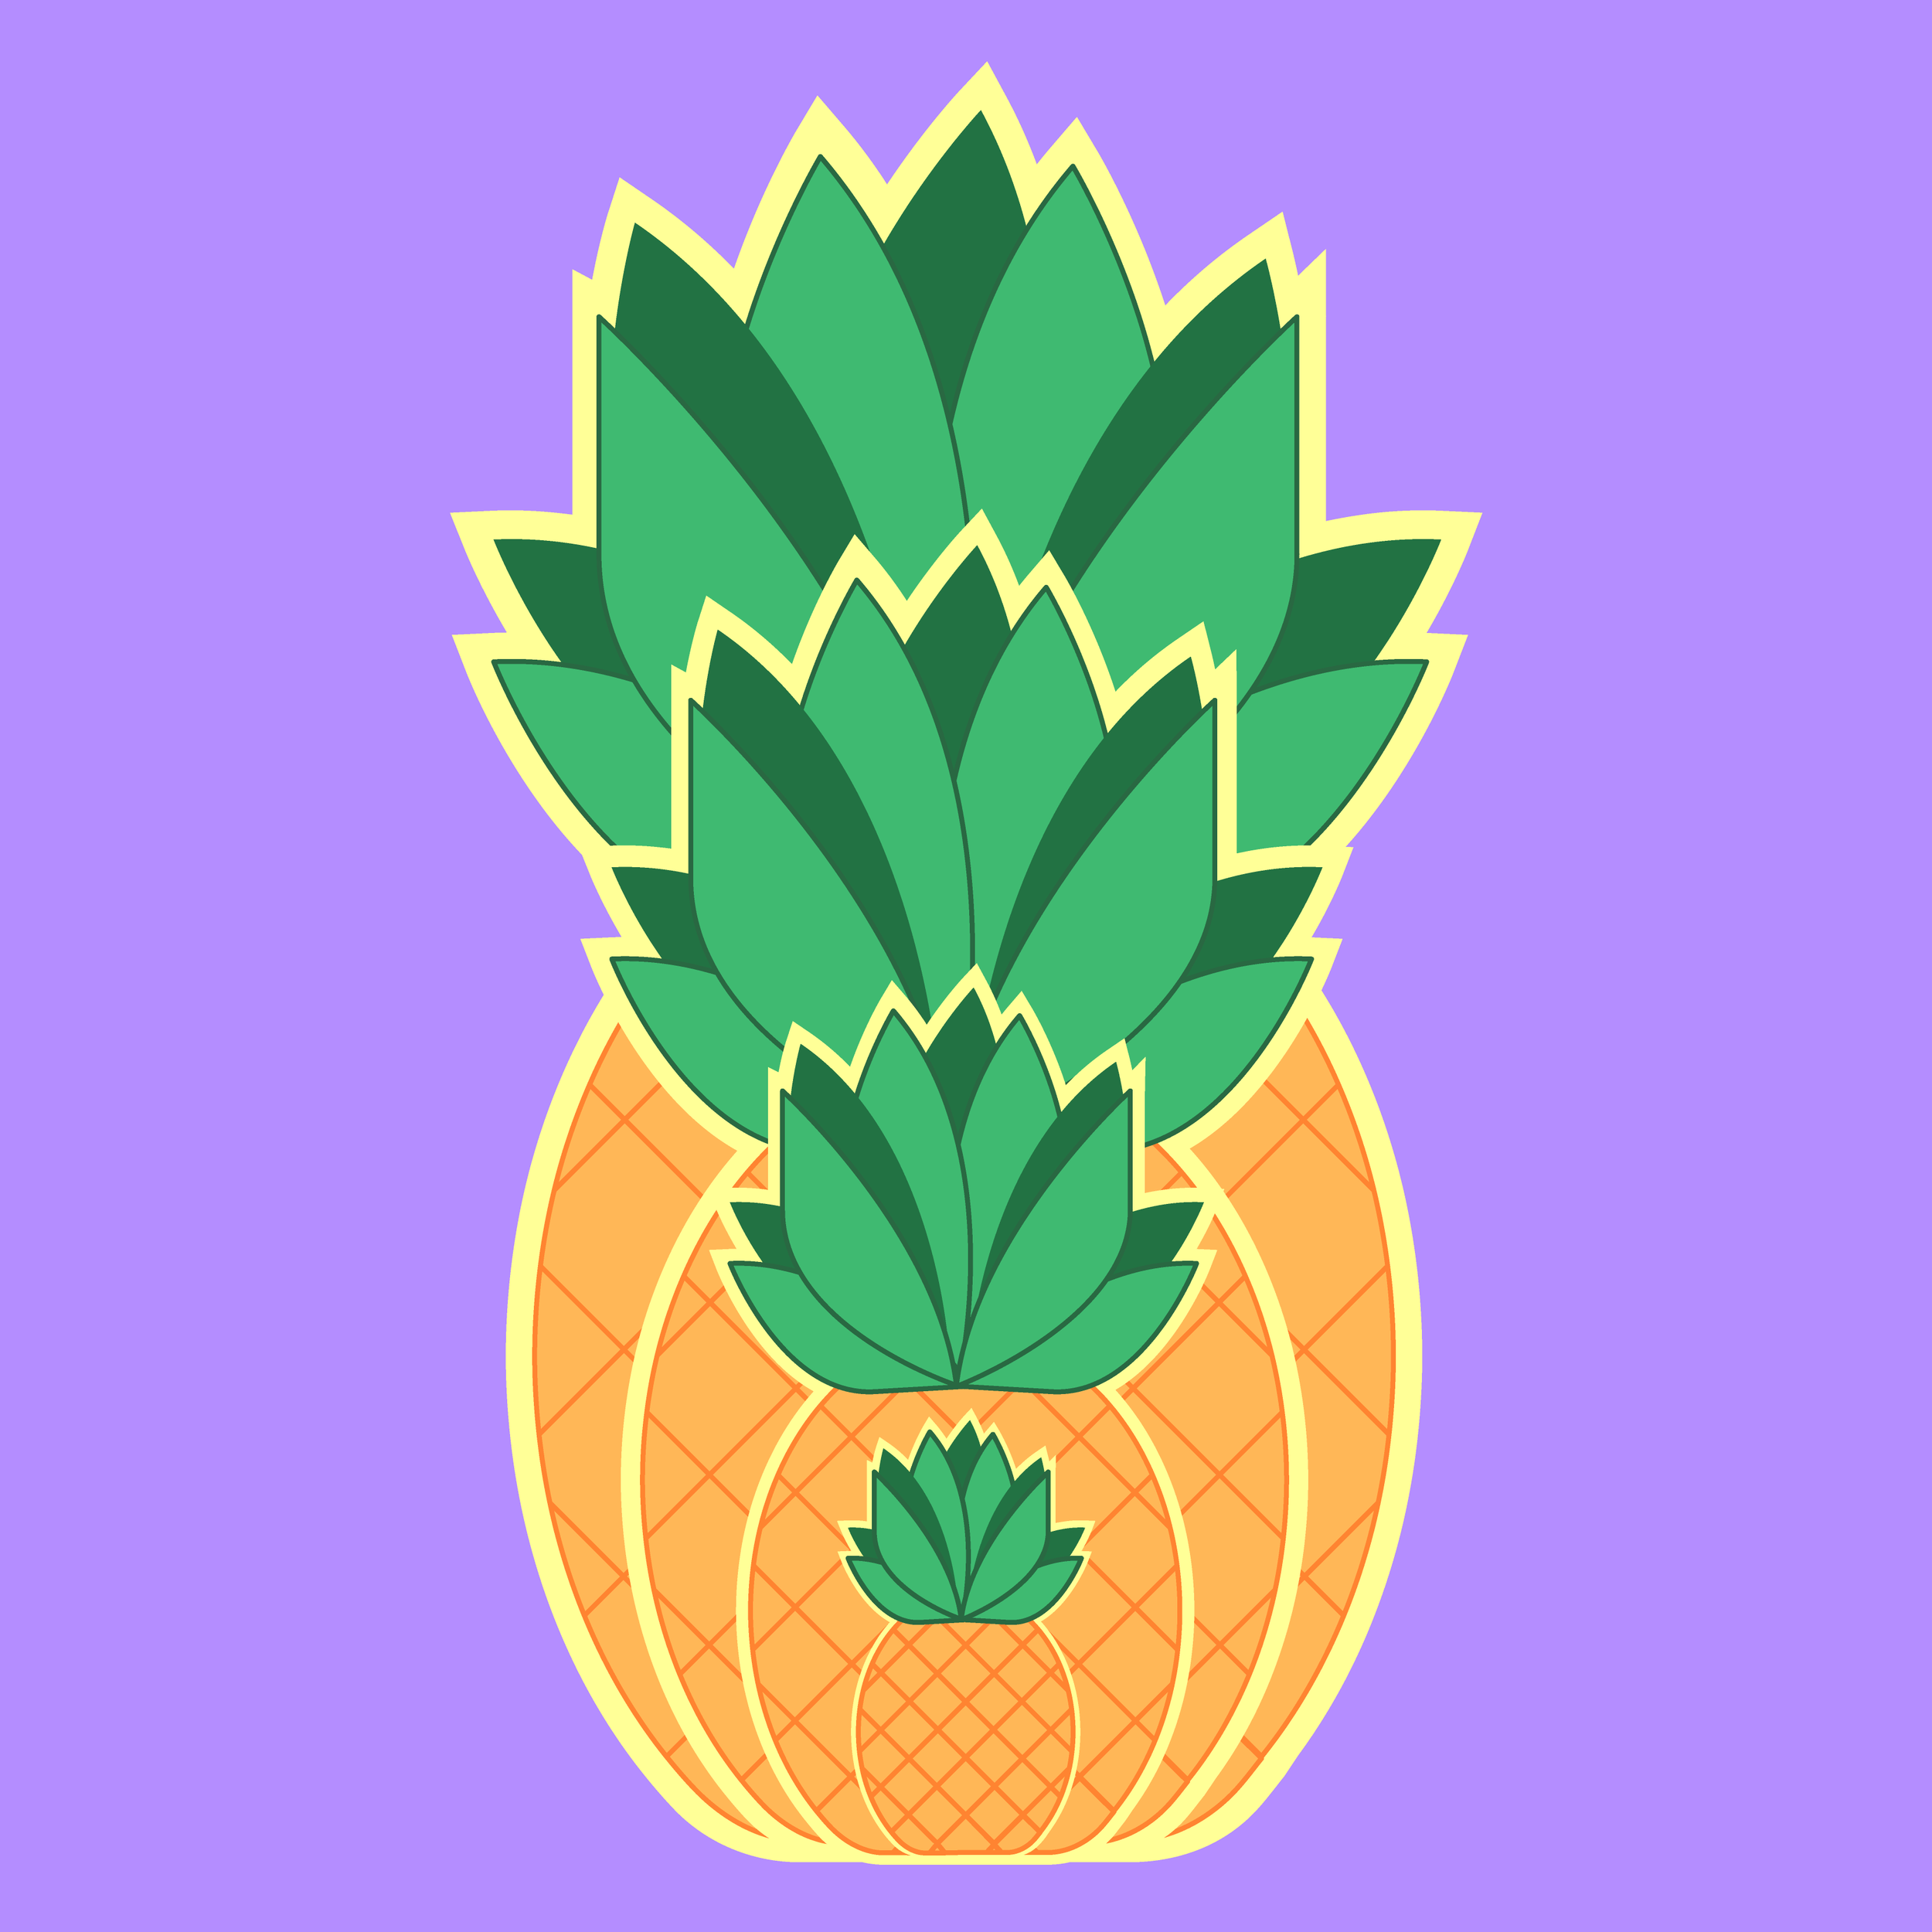 Pineapple_pattern-02.png